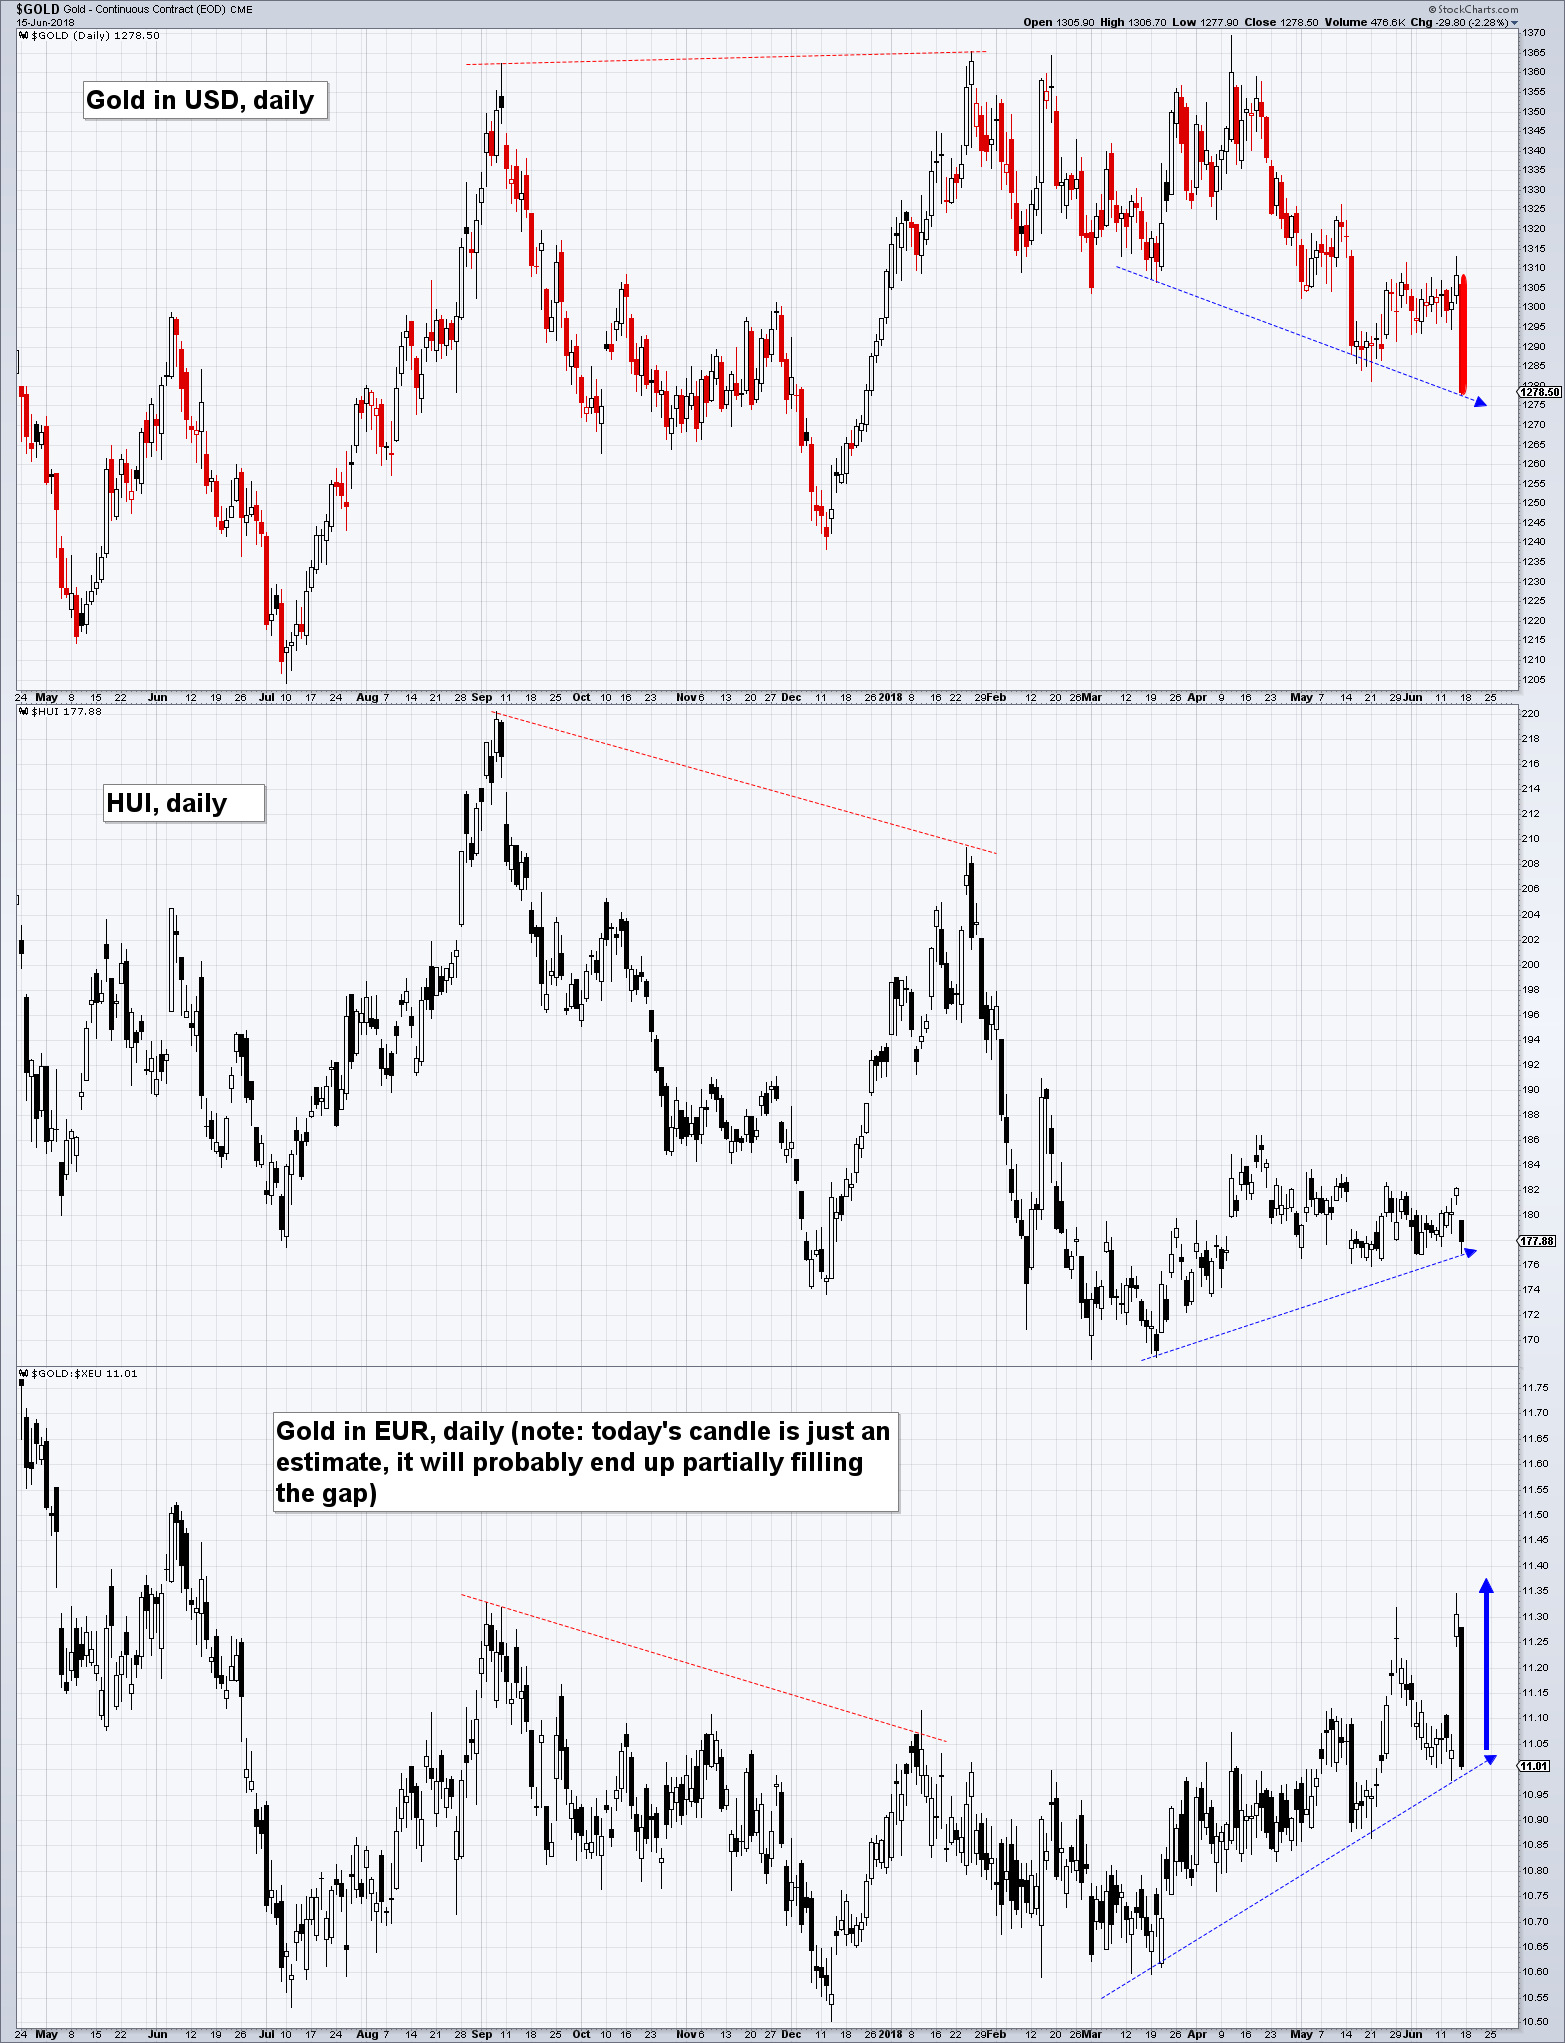 Gold In USD Daily; HUI Daily; Gold in EUR Daily